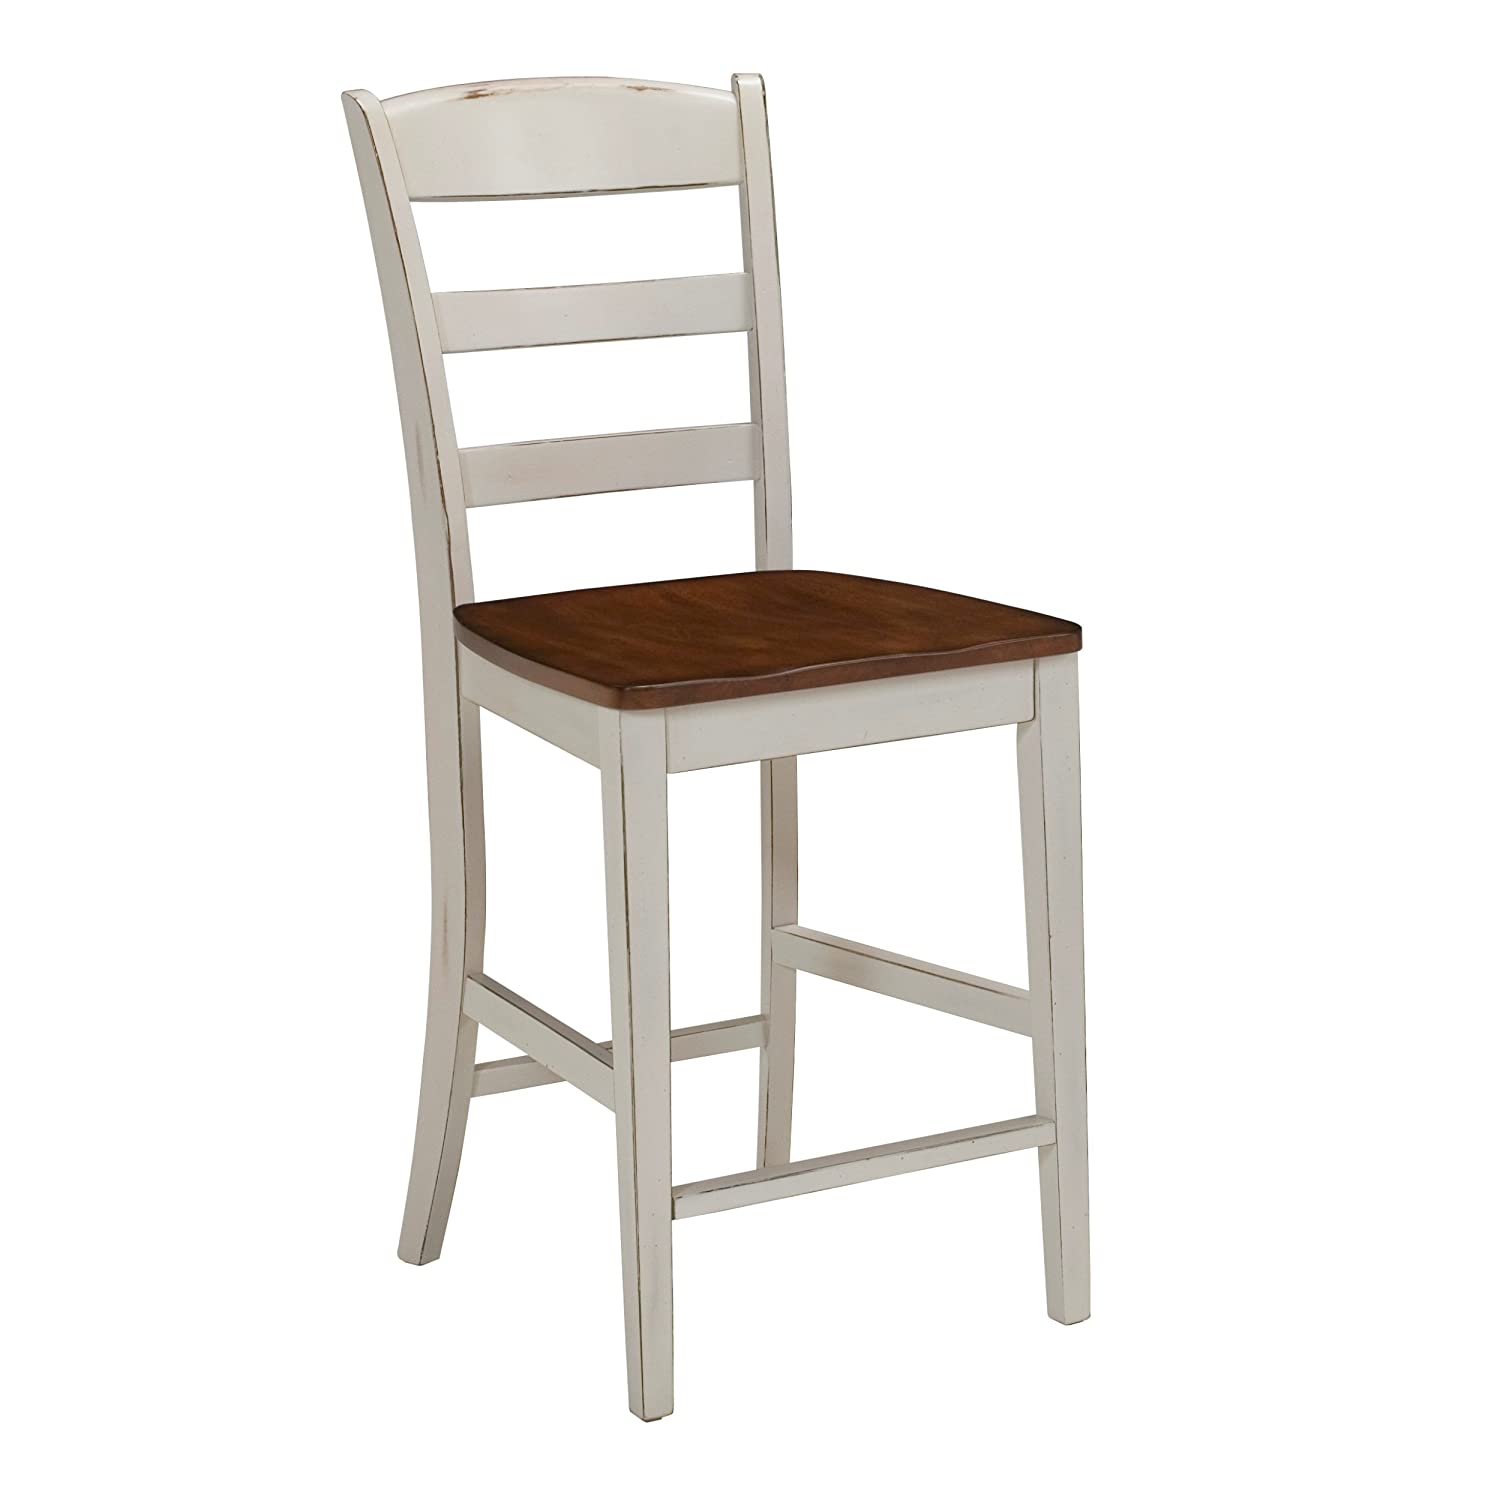 Amazoncom Home Styles 5020 89 Monarch Stool Antique White Finish